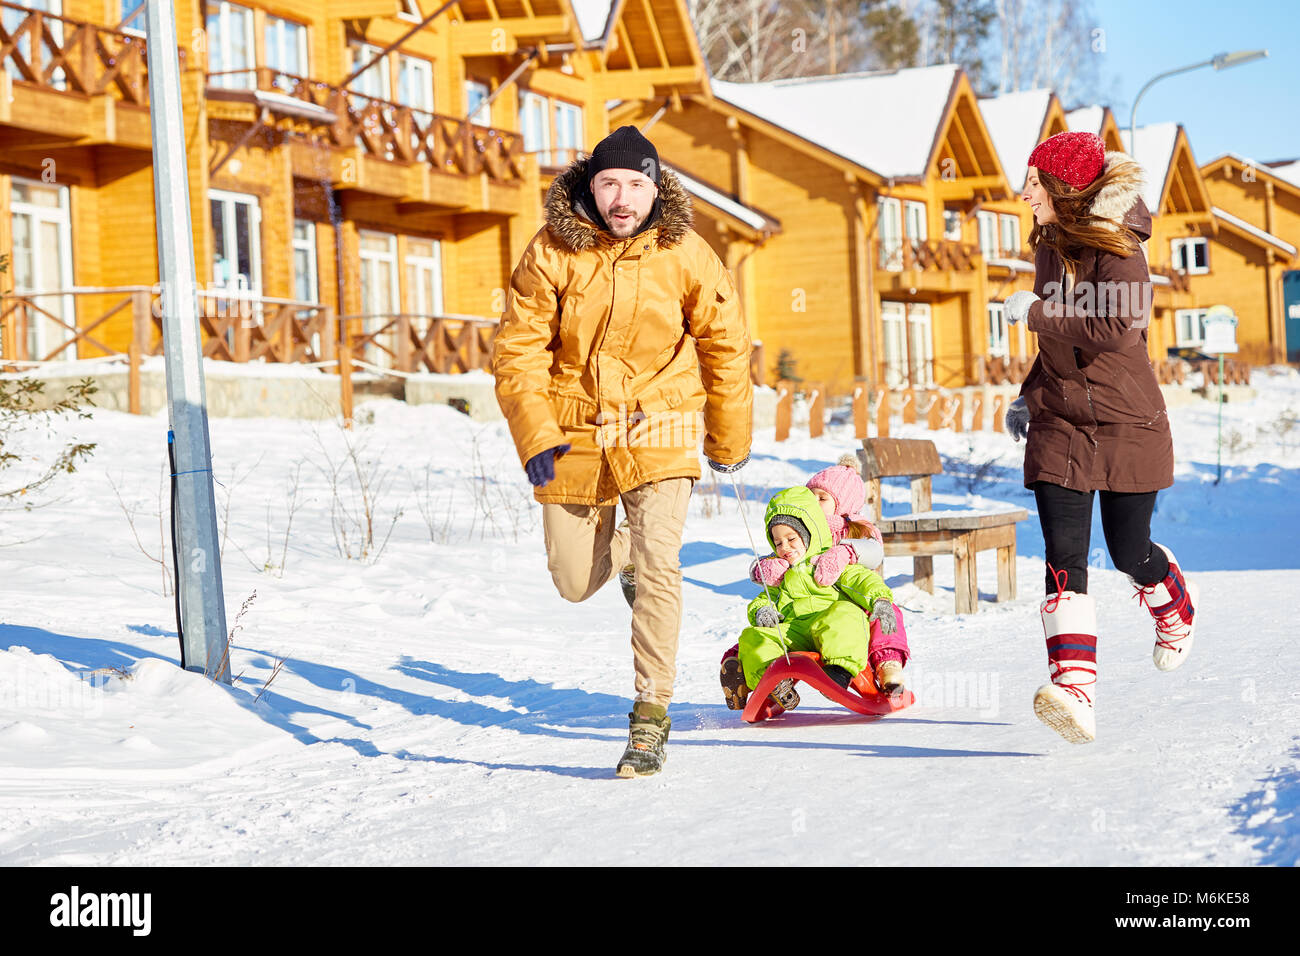 Family having fun in winter - Stock Image